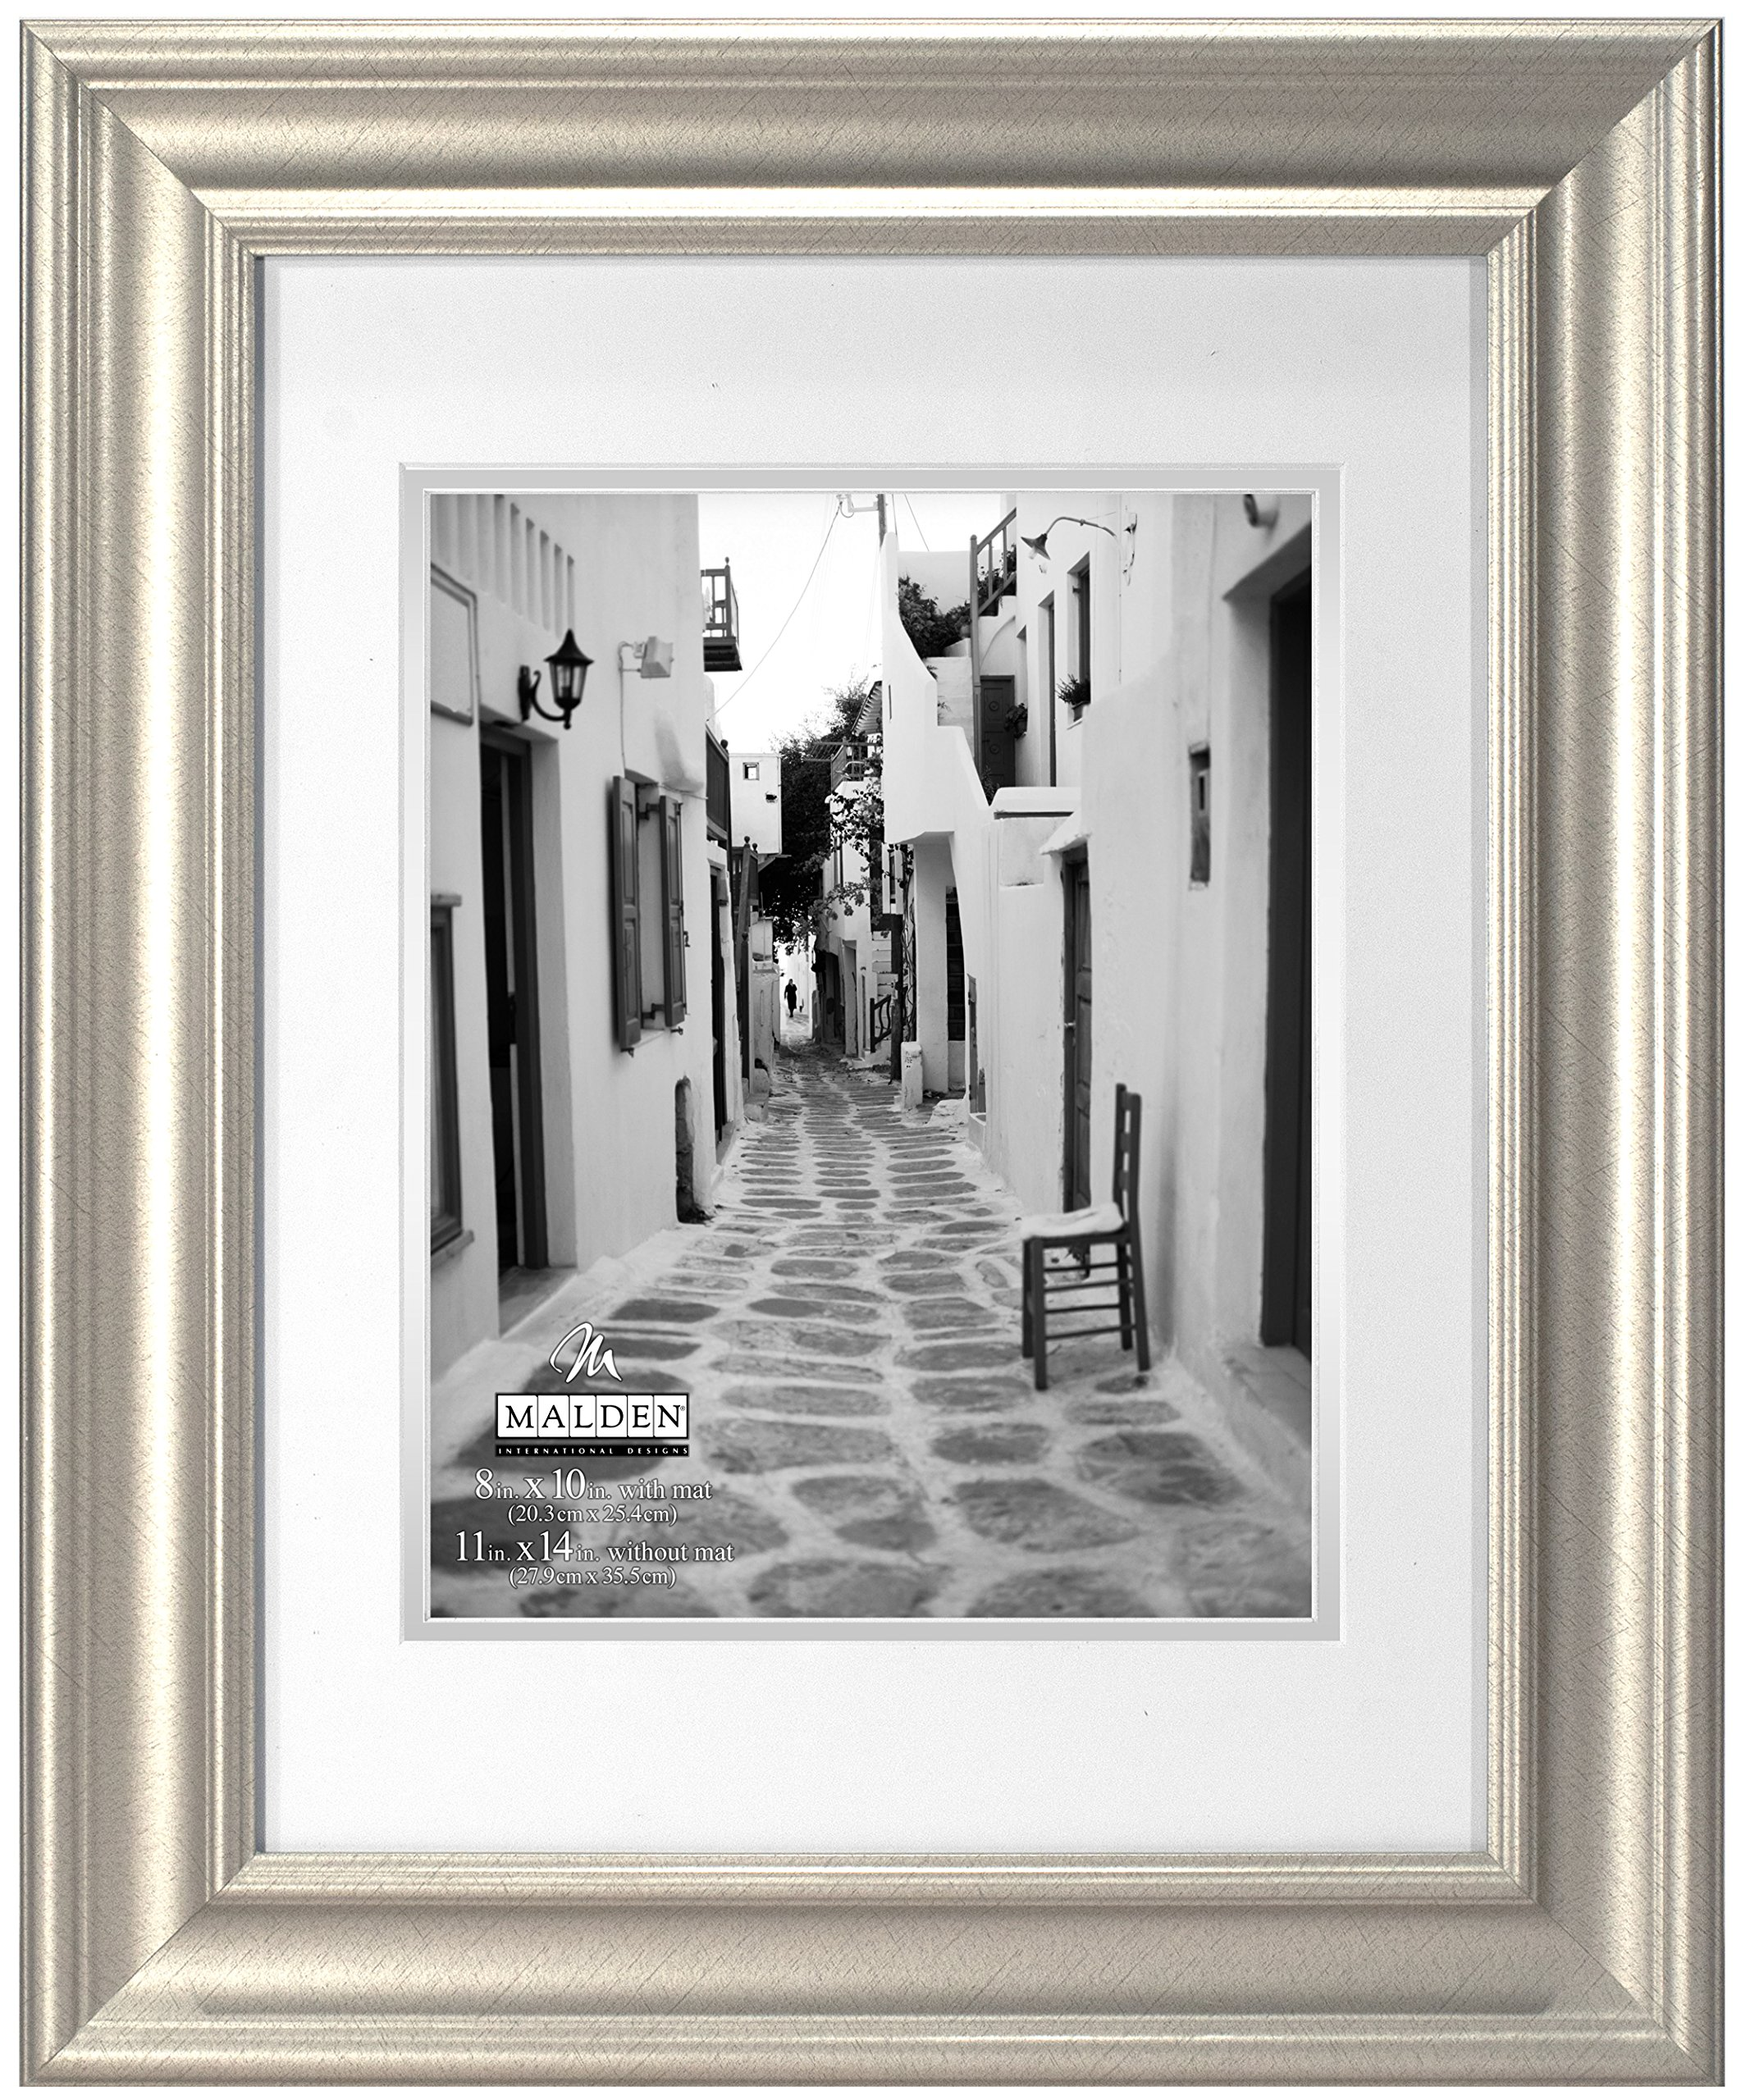 Malden International Designs Classic Wall Mouldings Eaton Double Matted Picture Frame, 8x10/11x14, Silver by Malden International Designs